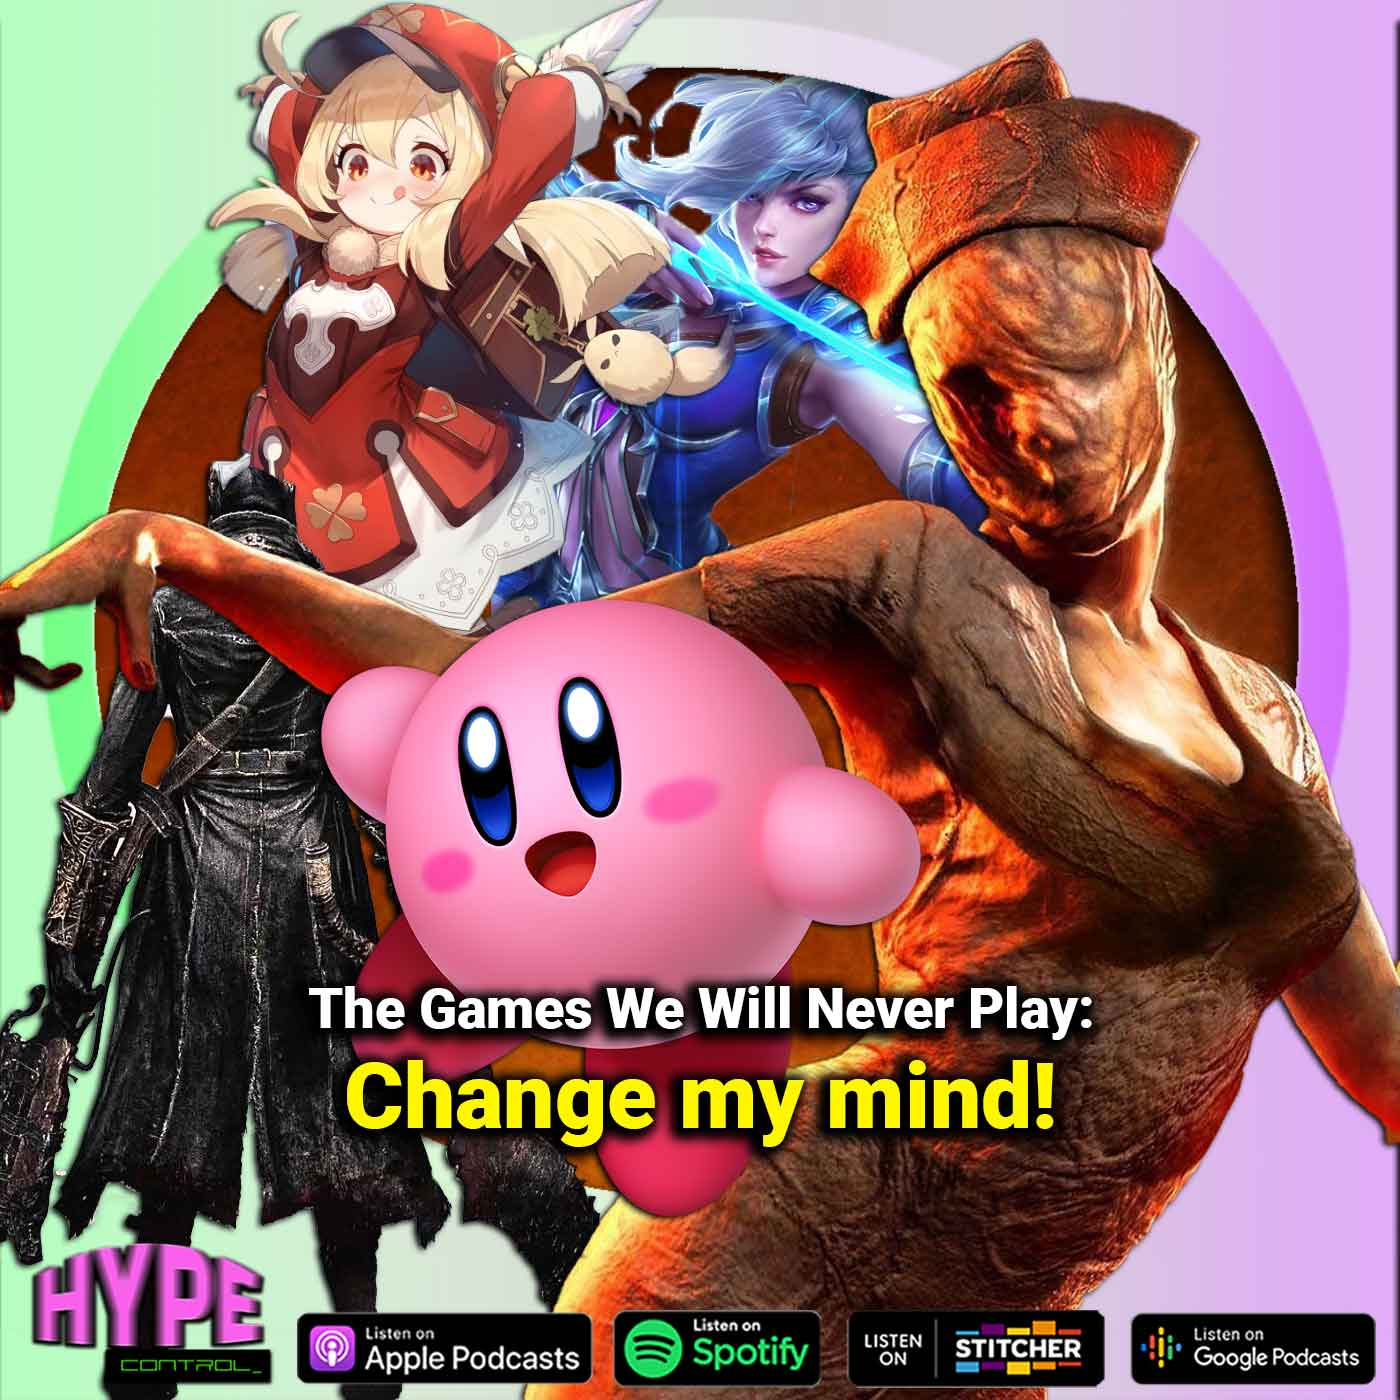 Ep. 25 - The Games We Will Never Play, Change My Mind